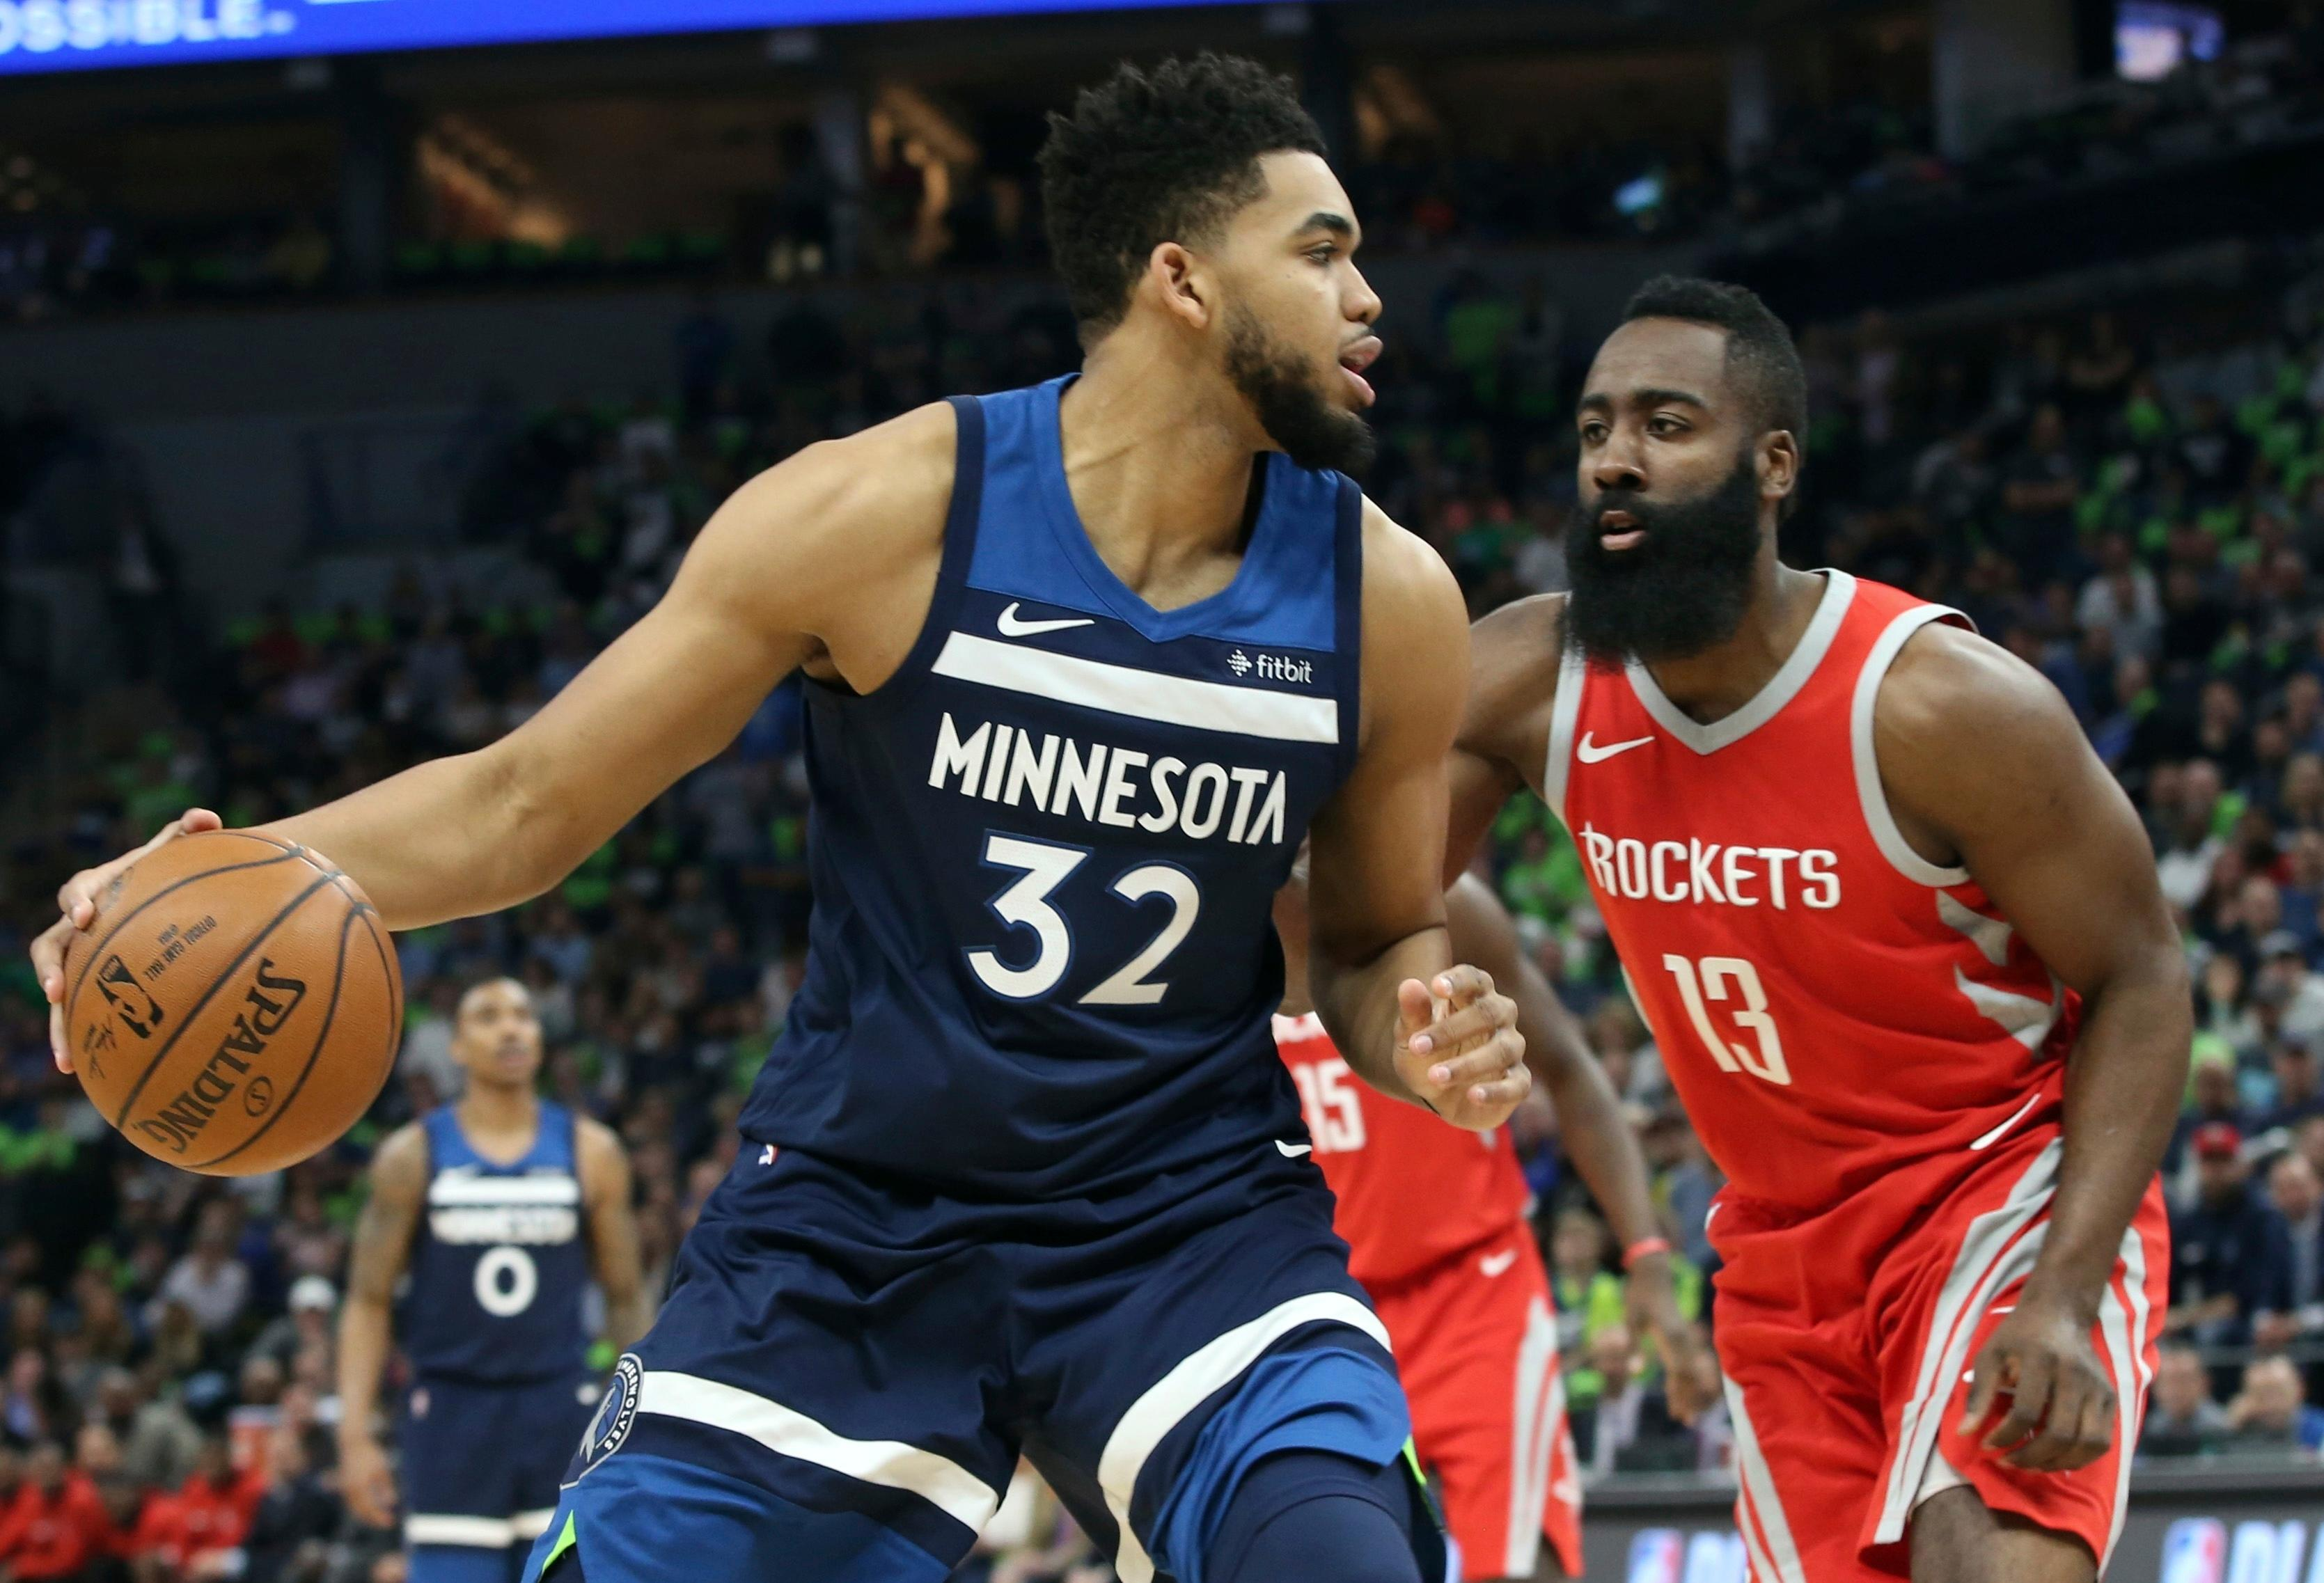 Minnesota Timberwolves' Karl-Anthony Towns, left, works his way around Houston Rockets' James Harden during the first half of Game 4 in an NBA basketball first-round playoff series Monday, April 23, 2018, in Minneapolis. (AP Photo/Jim Mone)